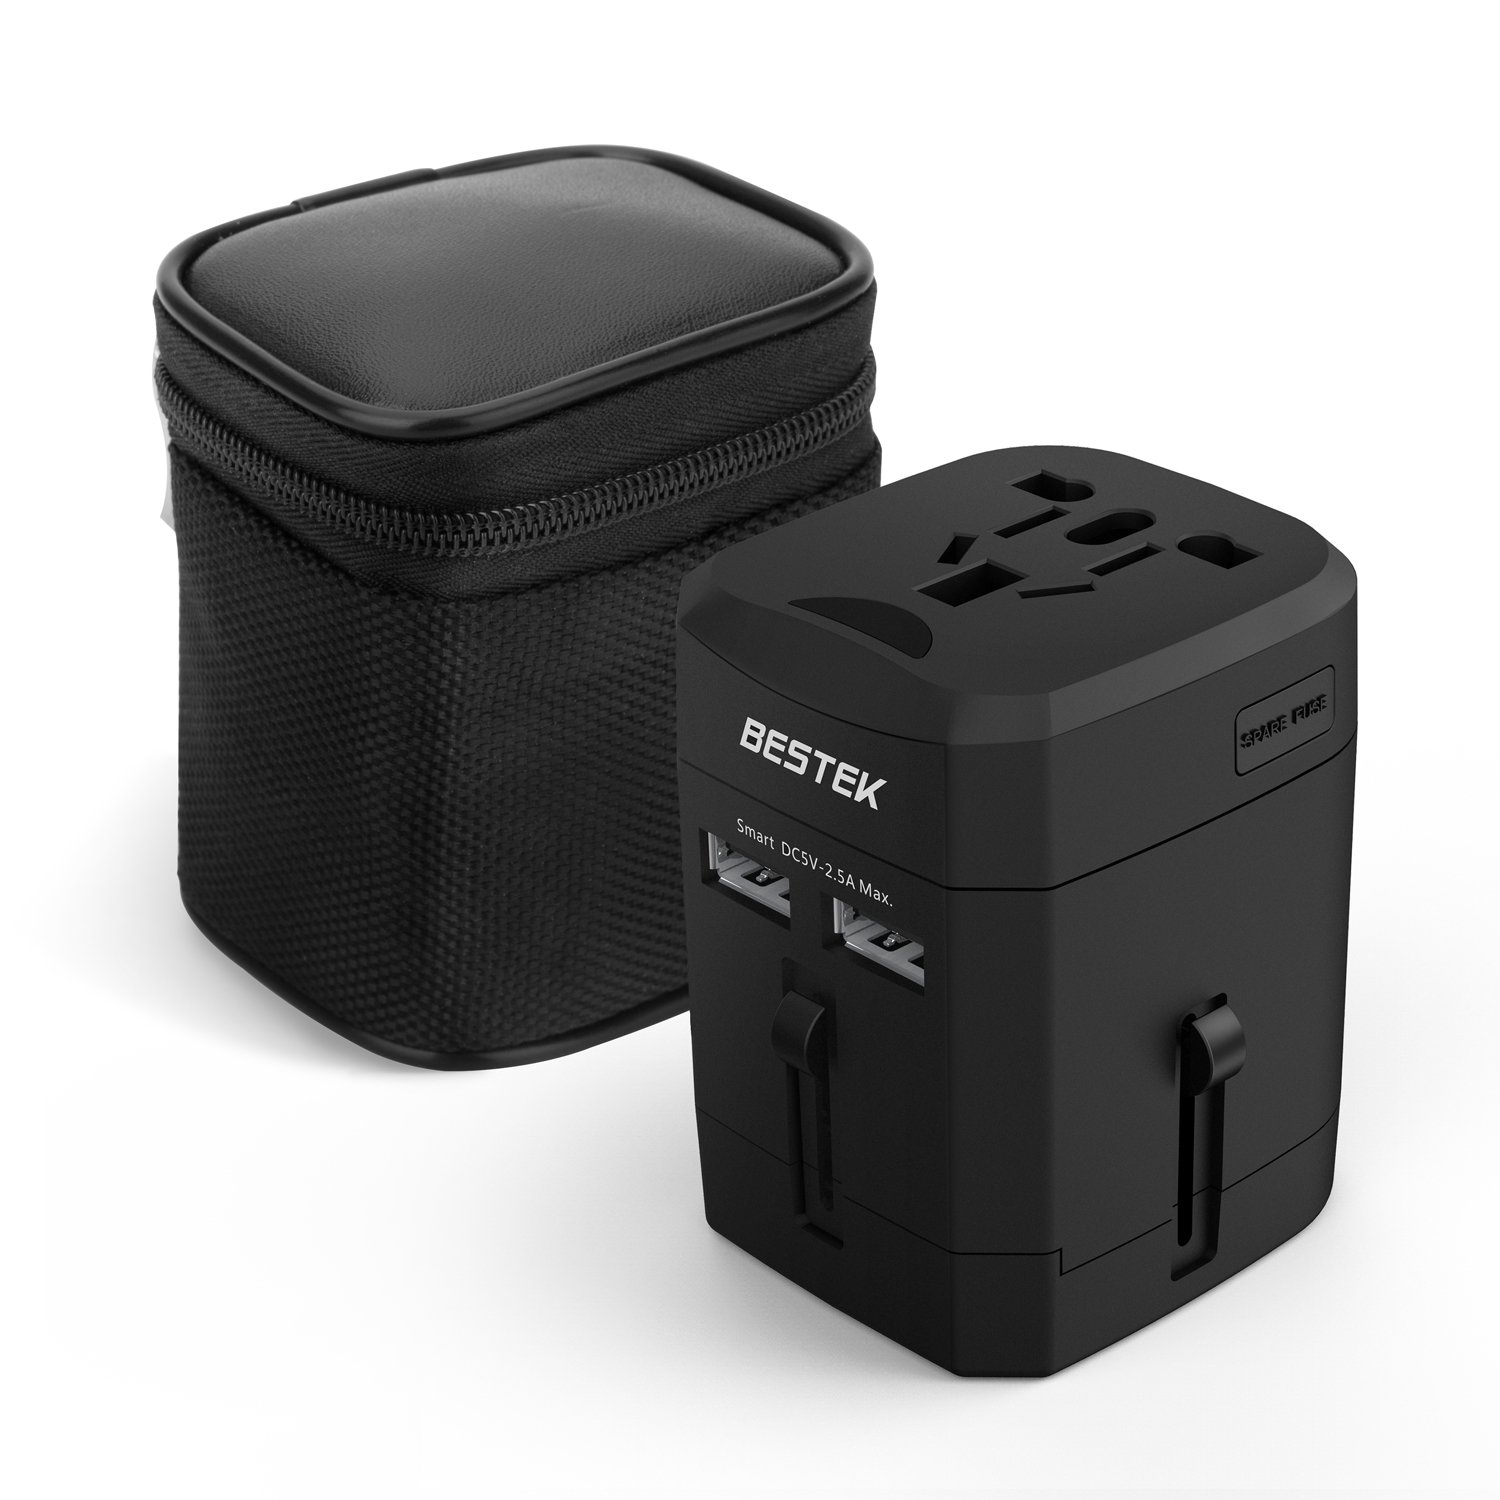 BESTEK Travel Adapter,  Universal All-in-One Travel Adapter with 2.5A Dual USB Ports for UK US AUS EU  Asia Covers 160 Countries